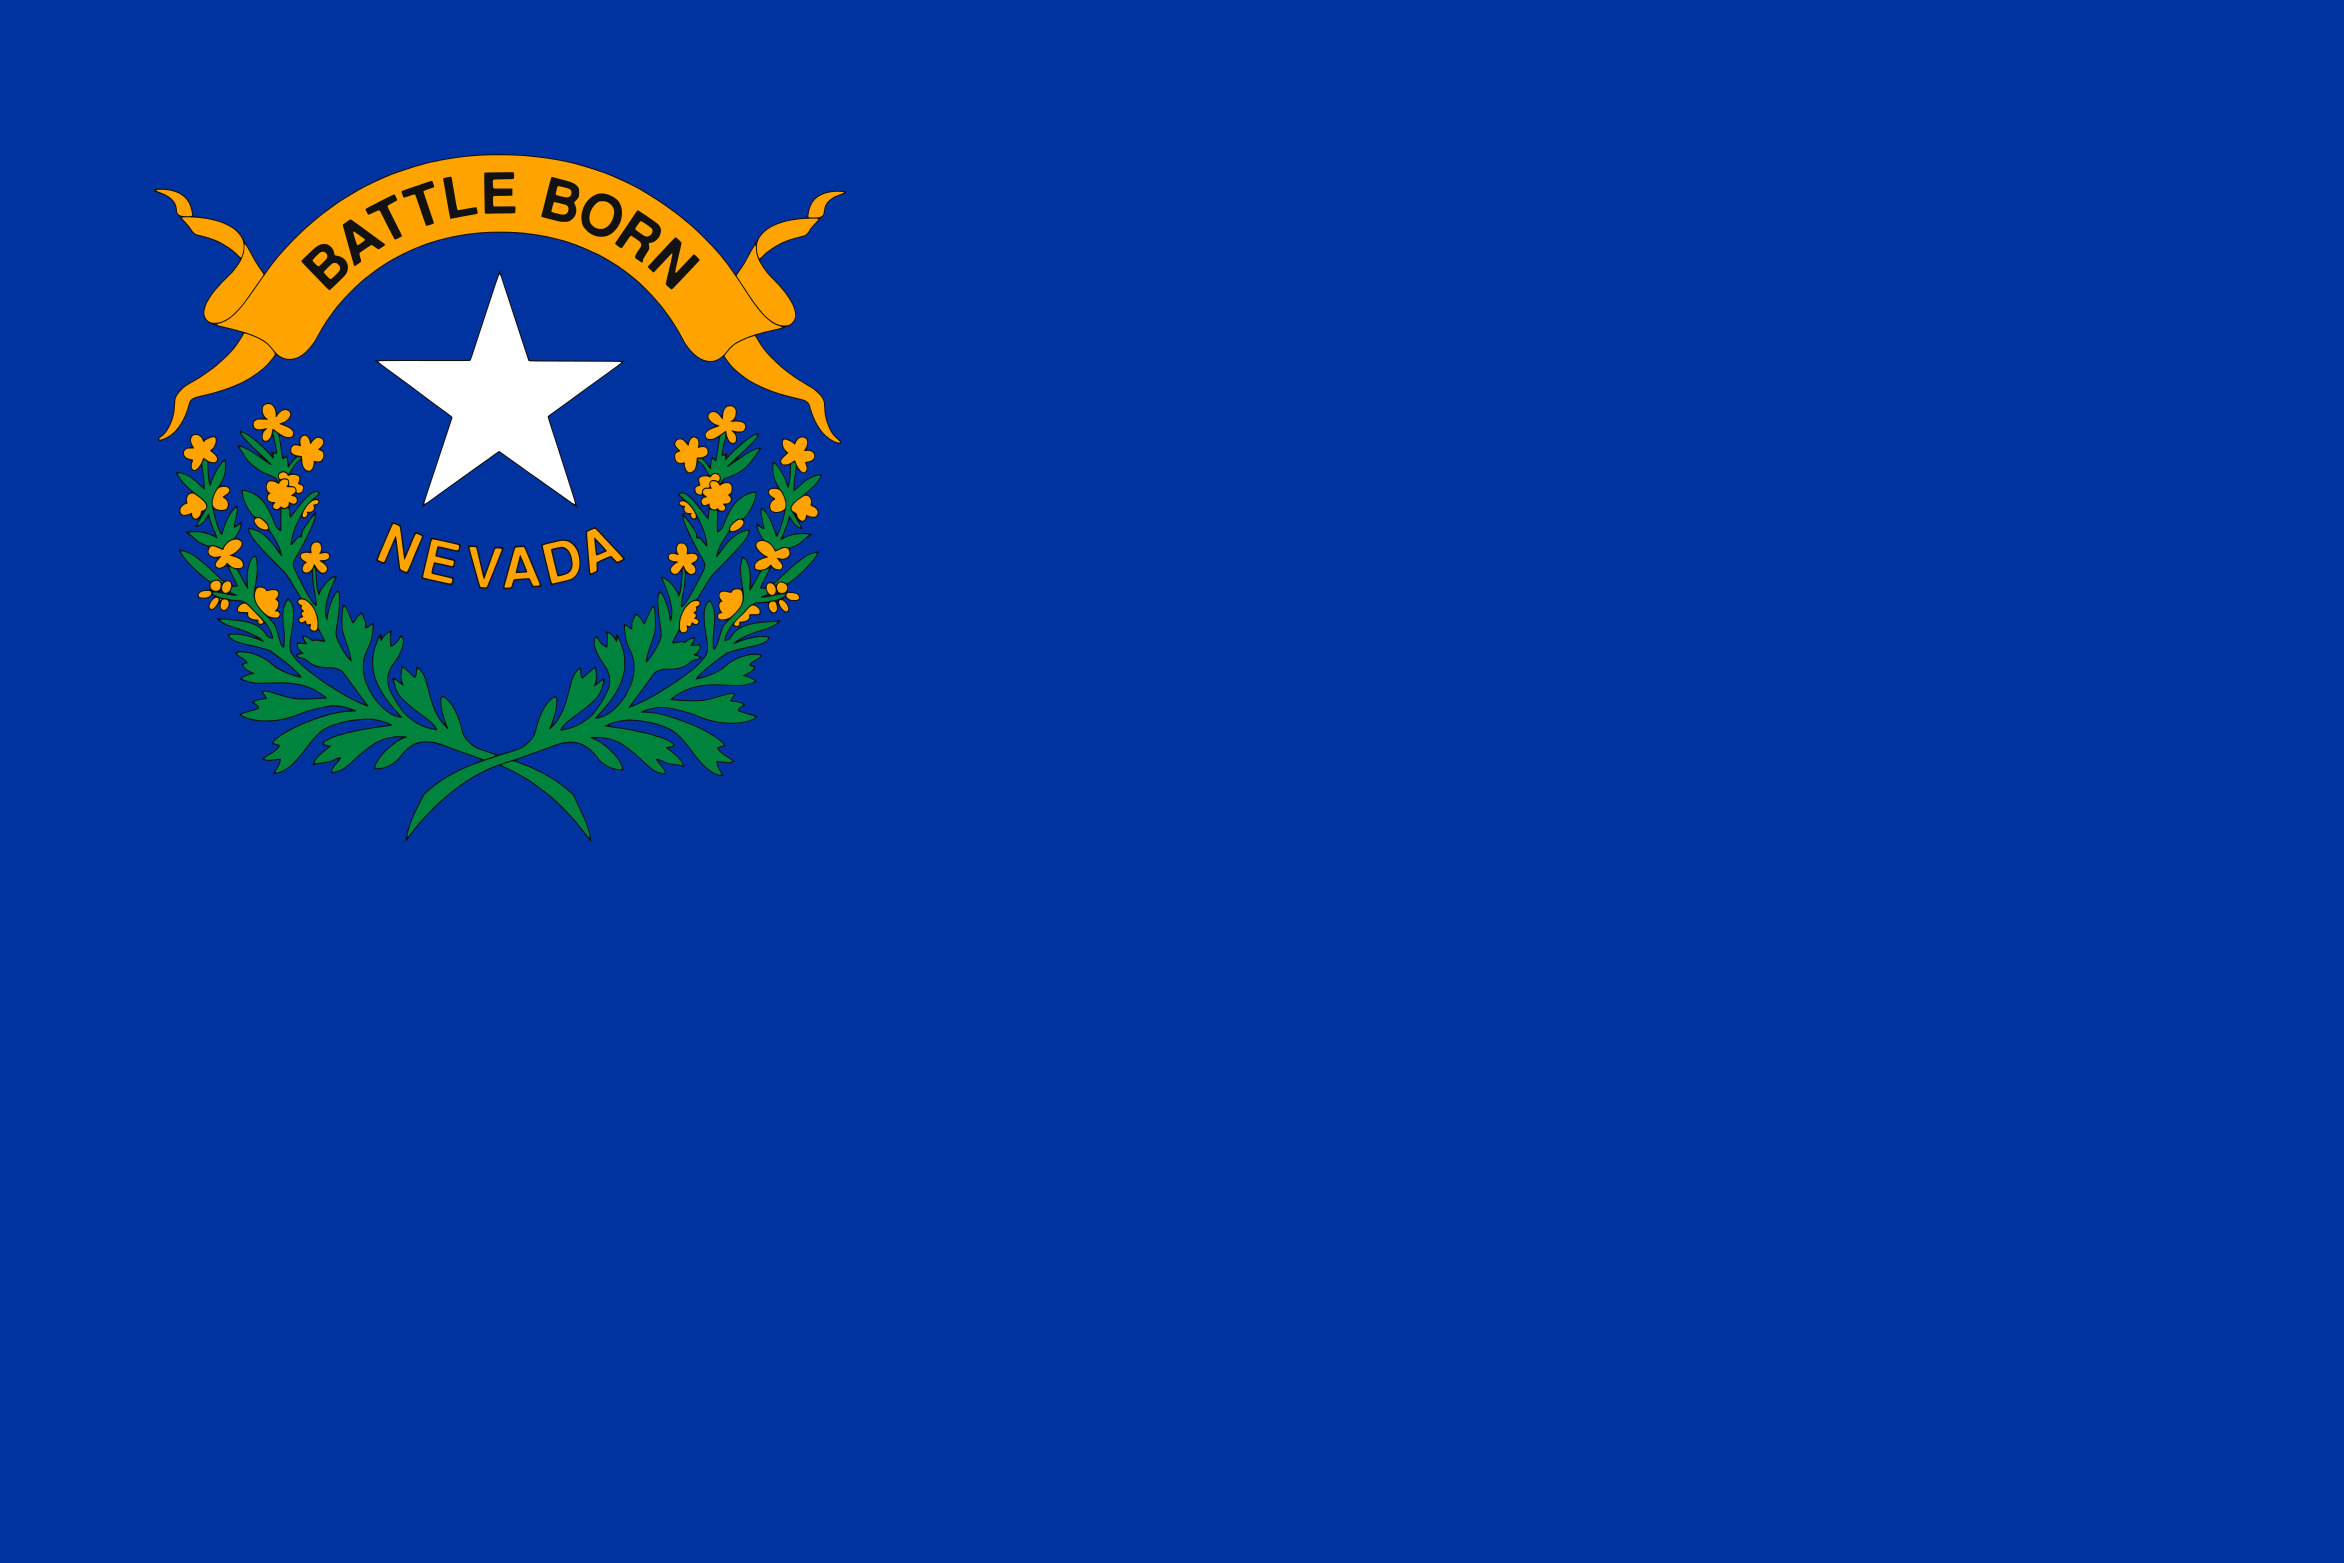 Nevada State Flag Colors